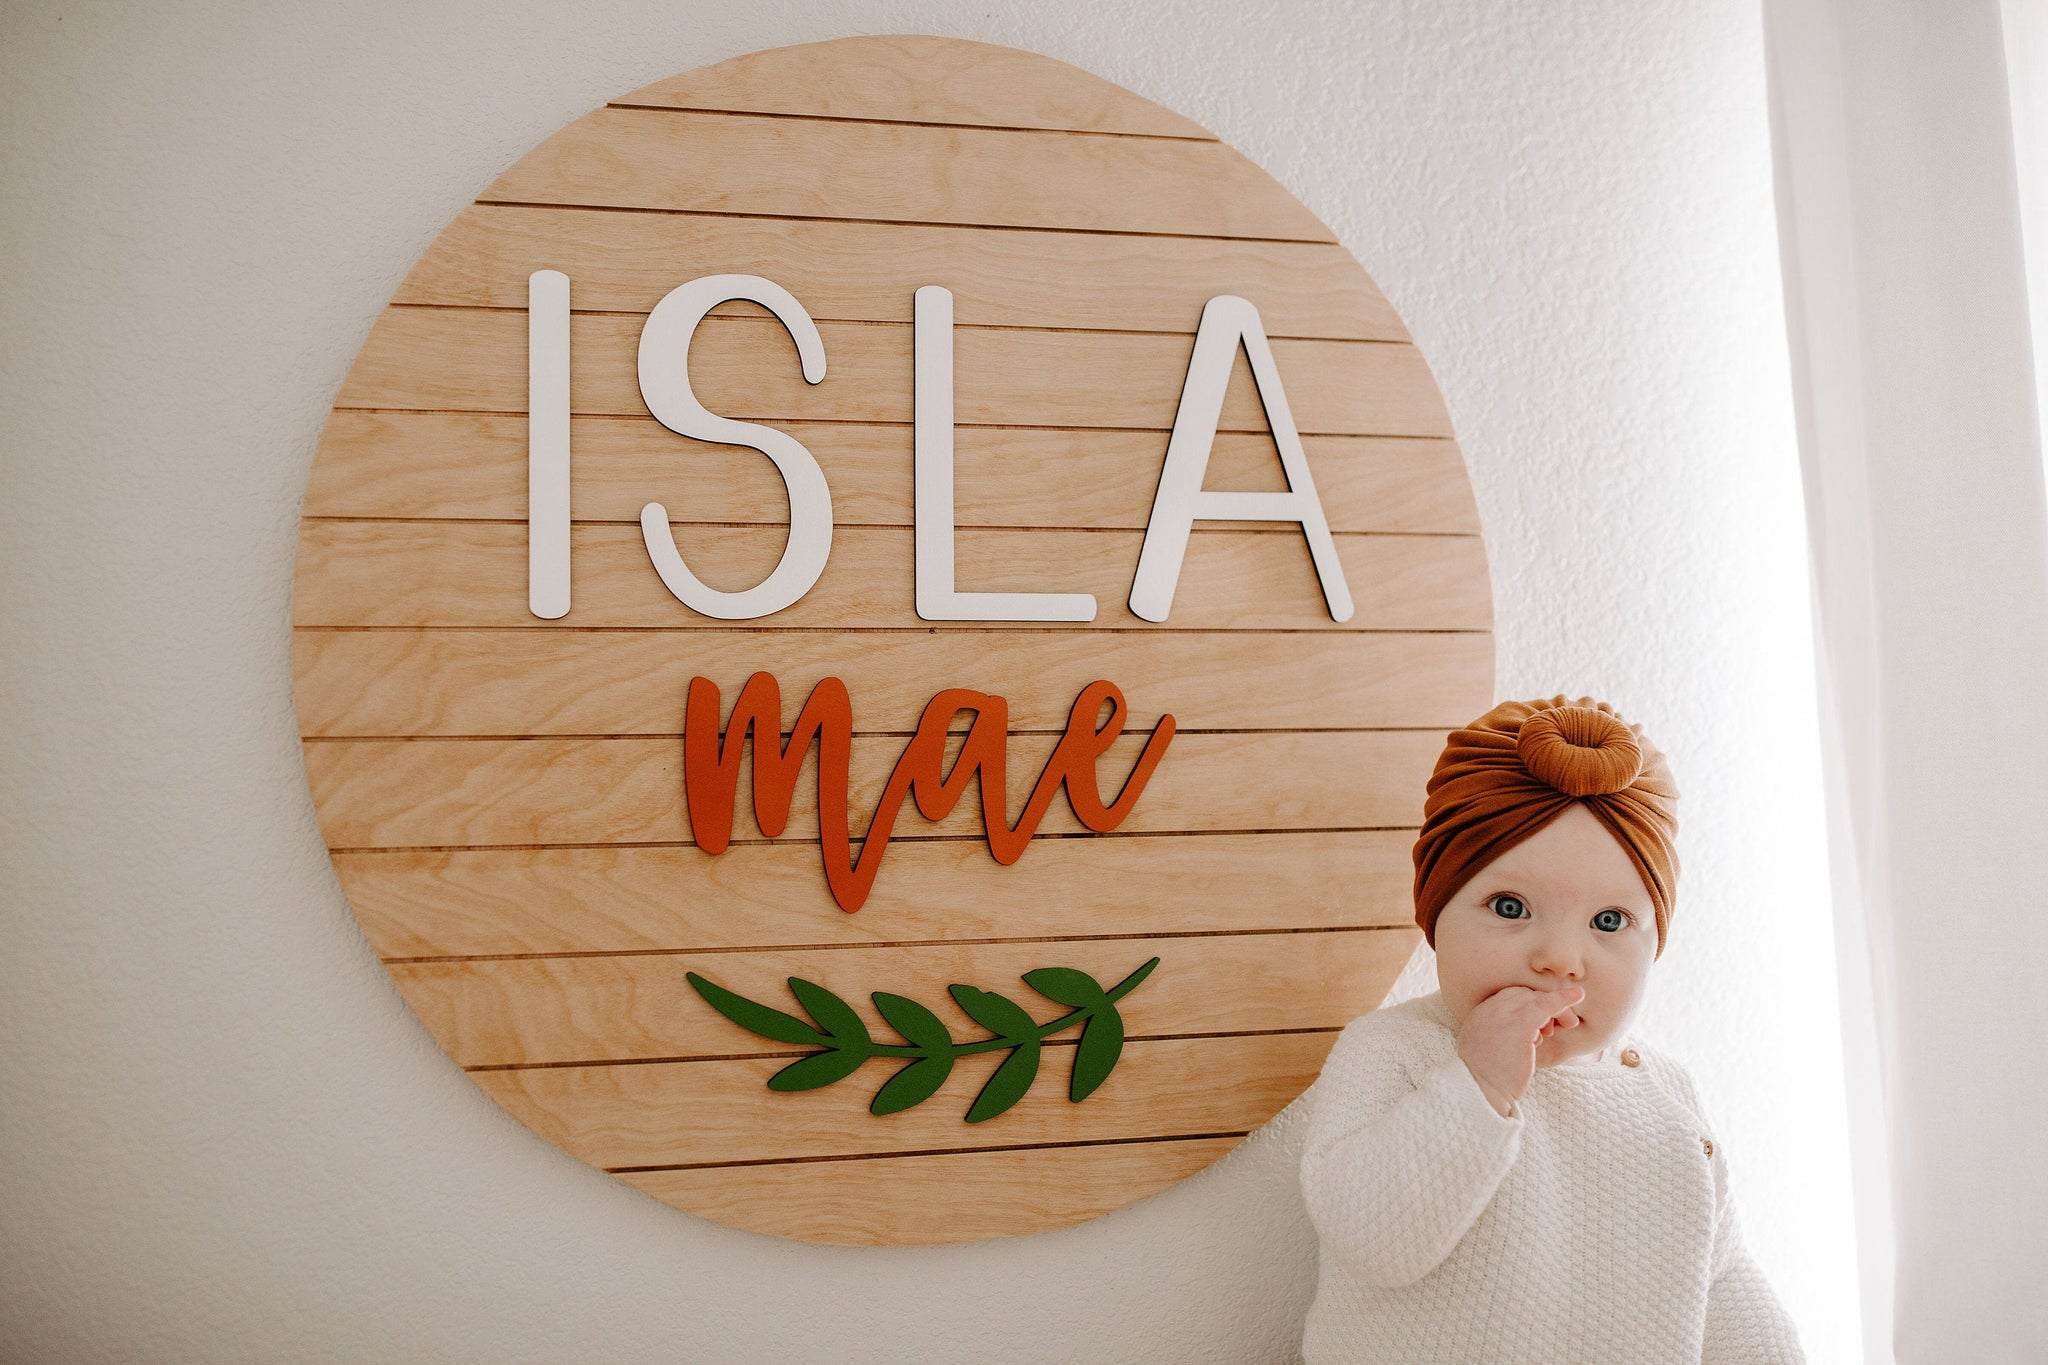 Leaf Style - Round Name Sign, Nursery Decor, Above the Crib, Modern Baby Decor, Wood Name Sign, Custom Wood Cutout